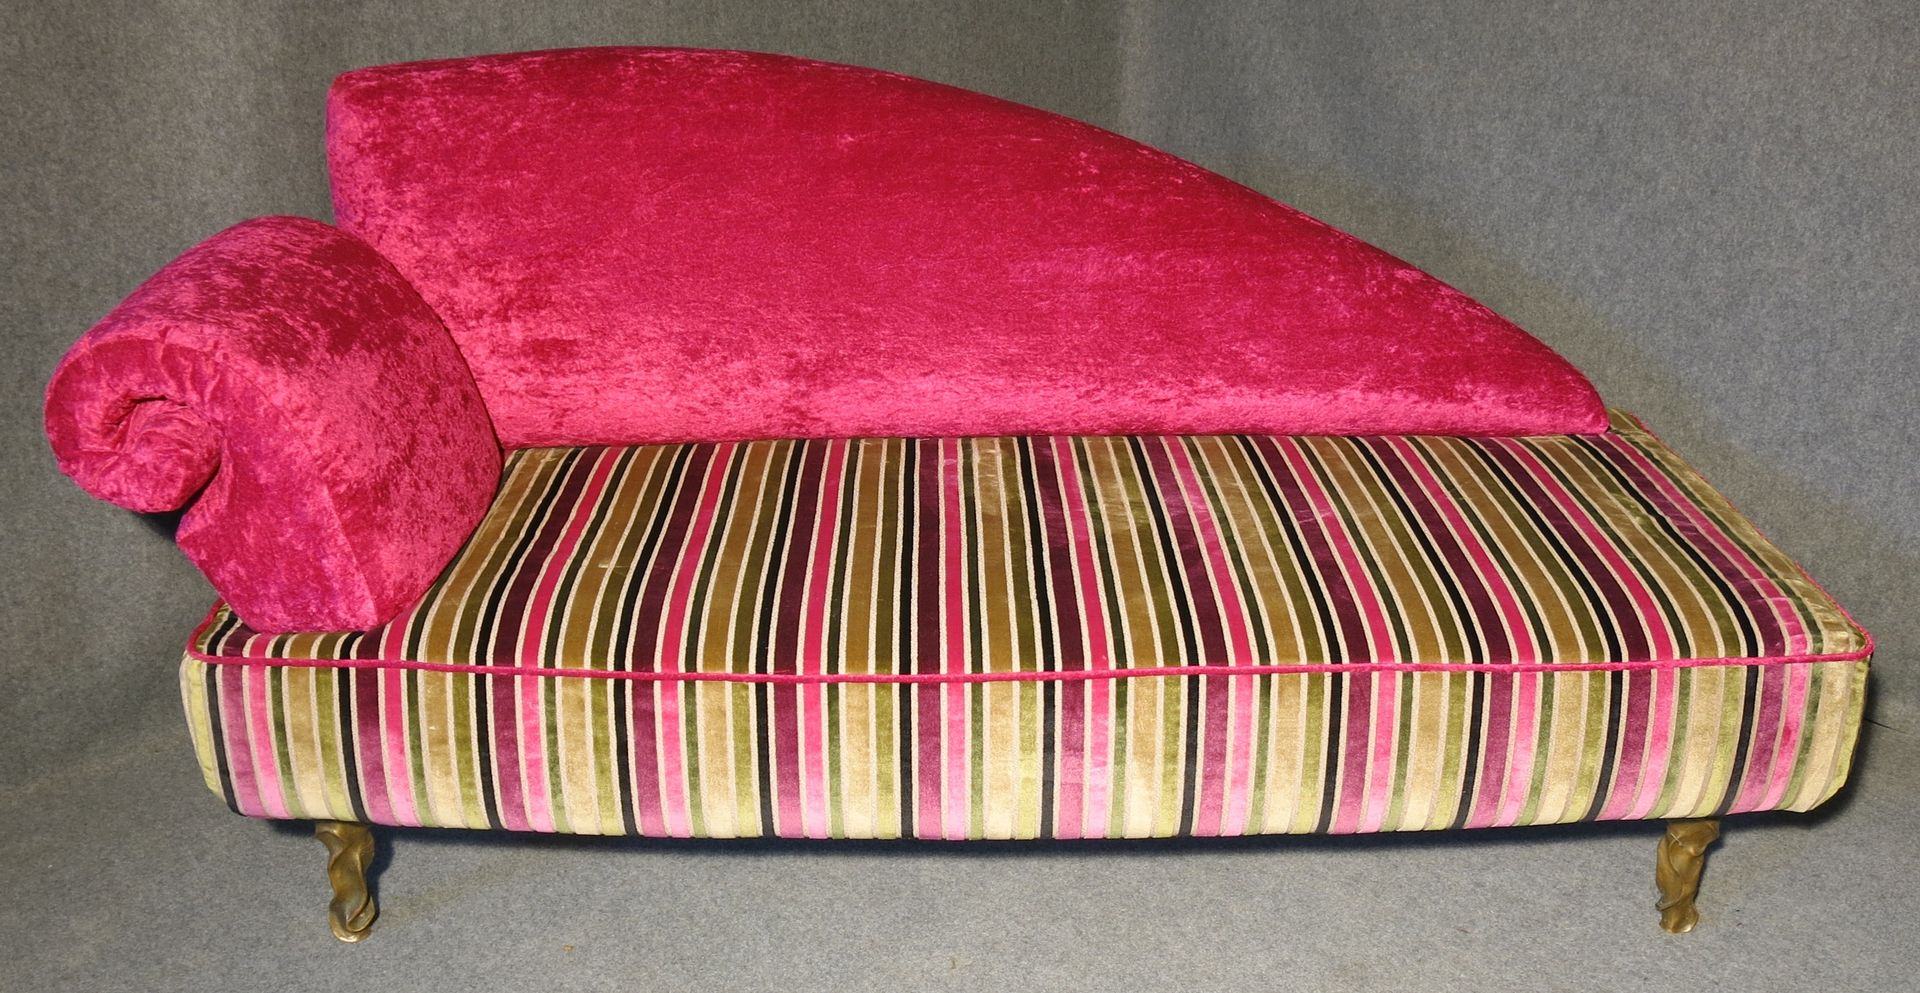 pink italian art deco velvet chaise lounge for sale at pamono - pink italian art deco velvet chaise lounge